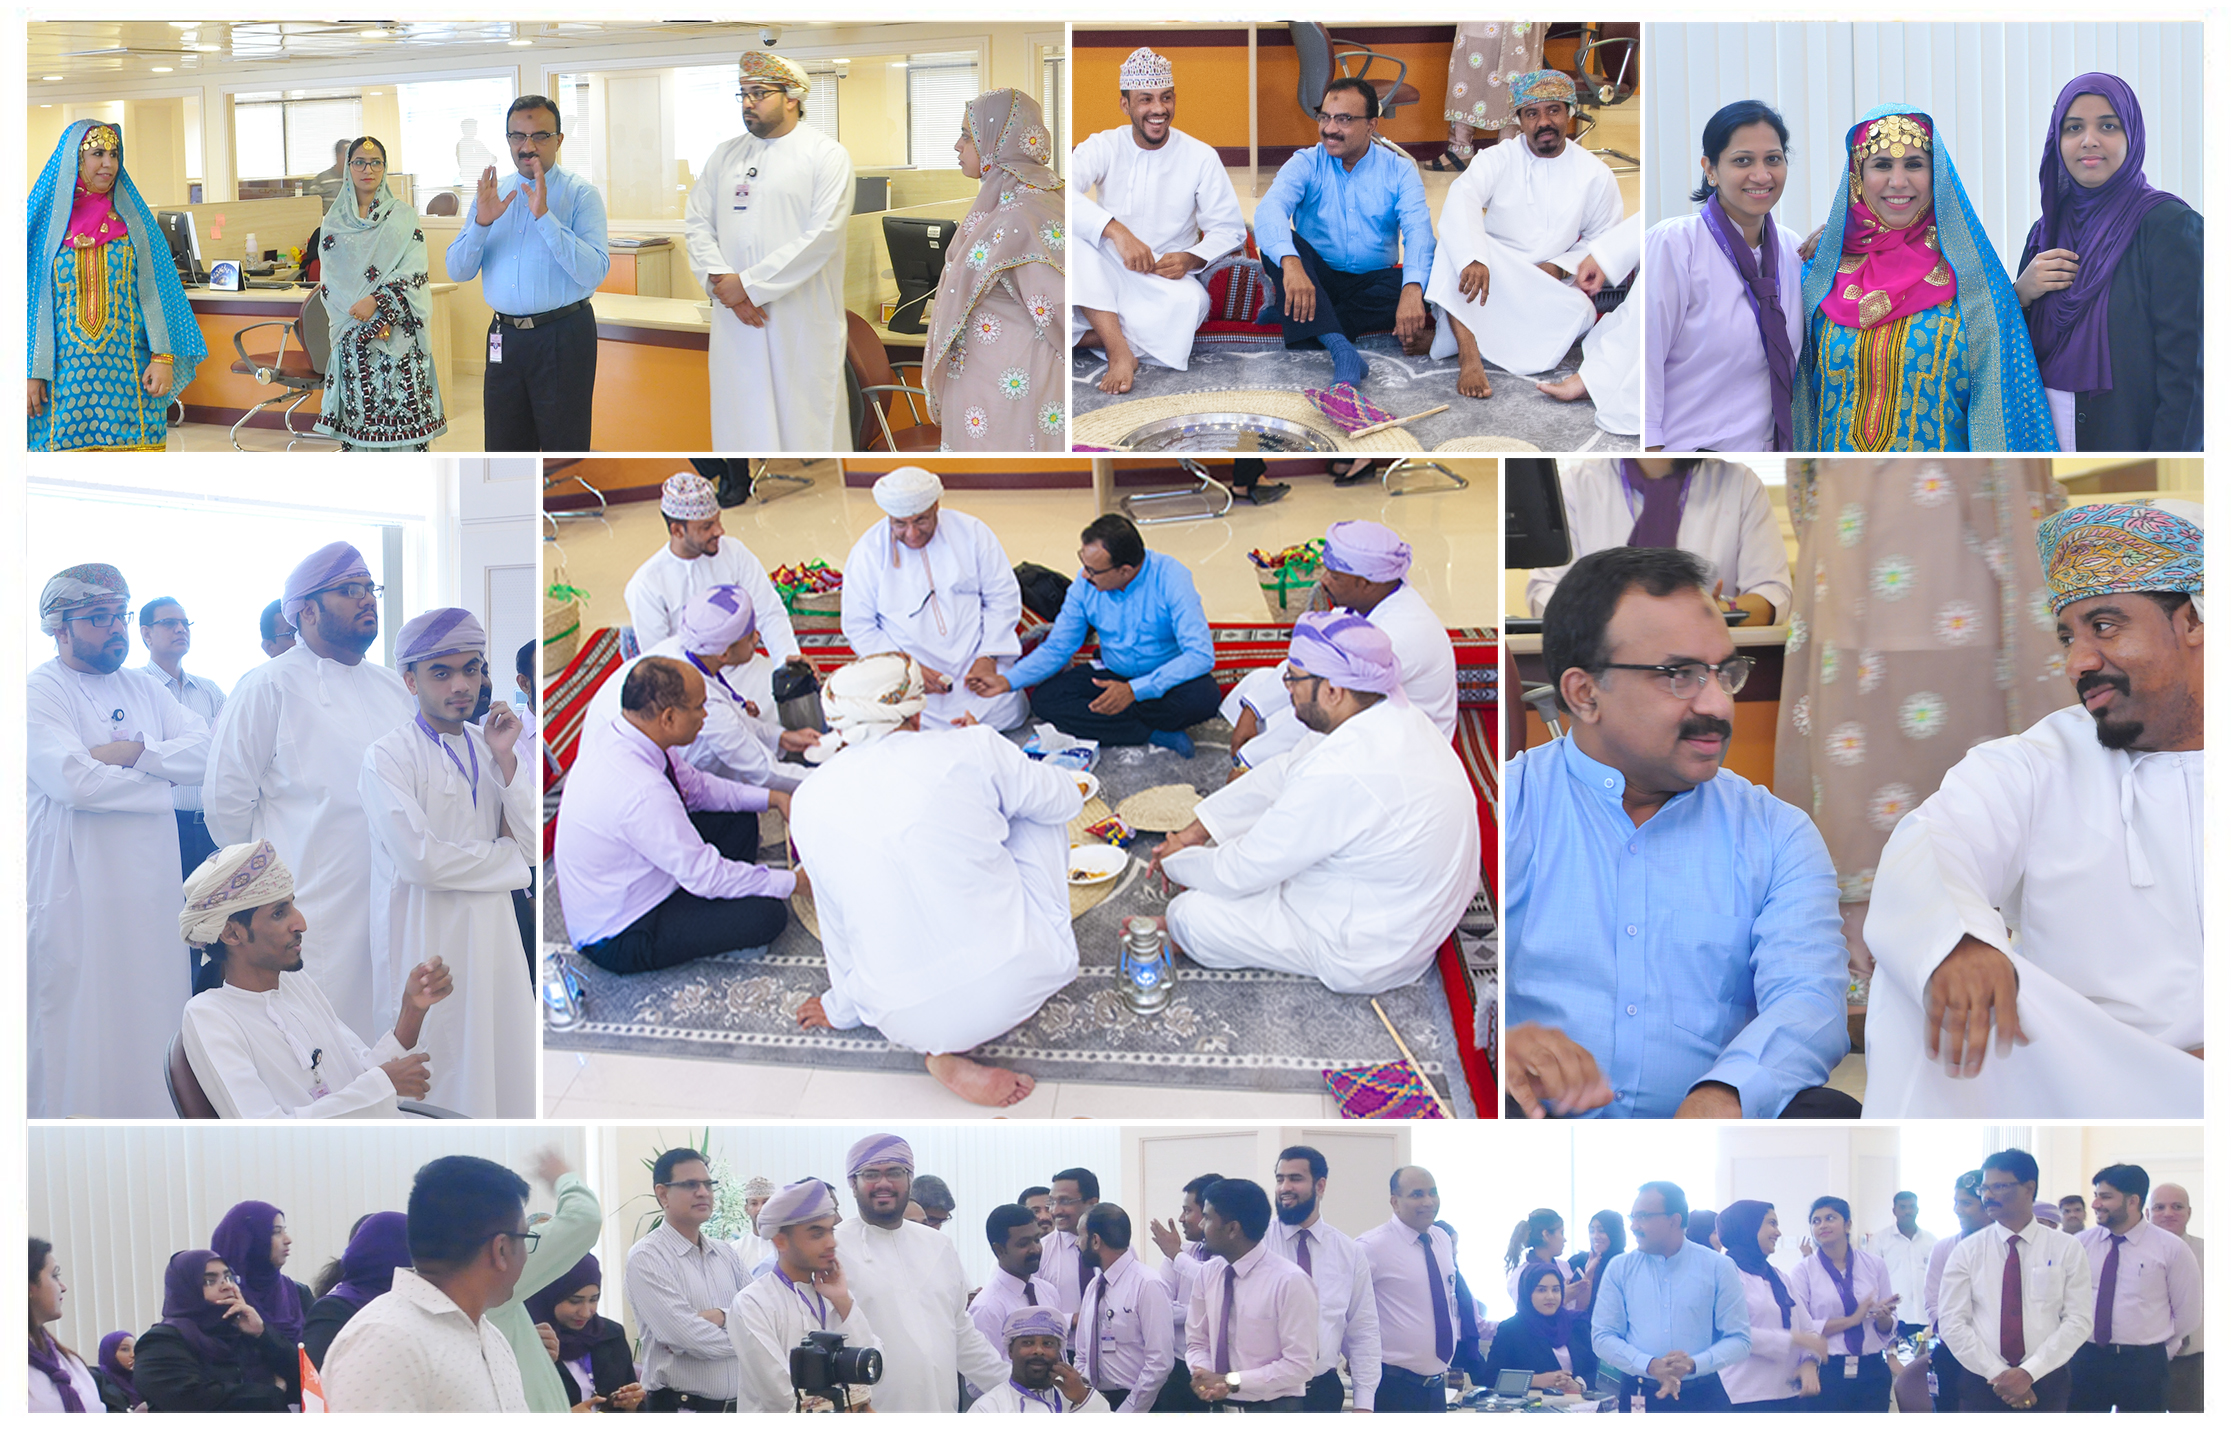 Team Majan celebrated the 48th Oman Renaissance Da